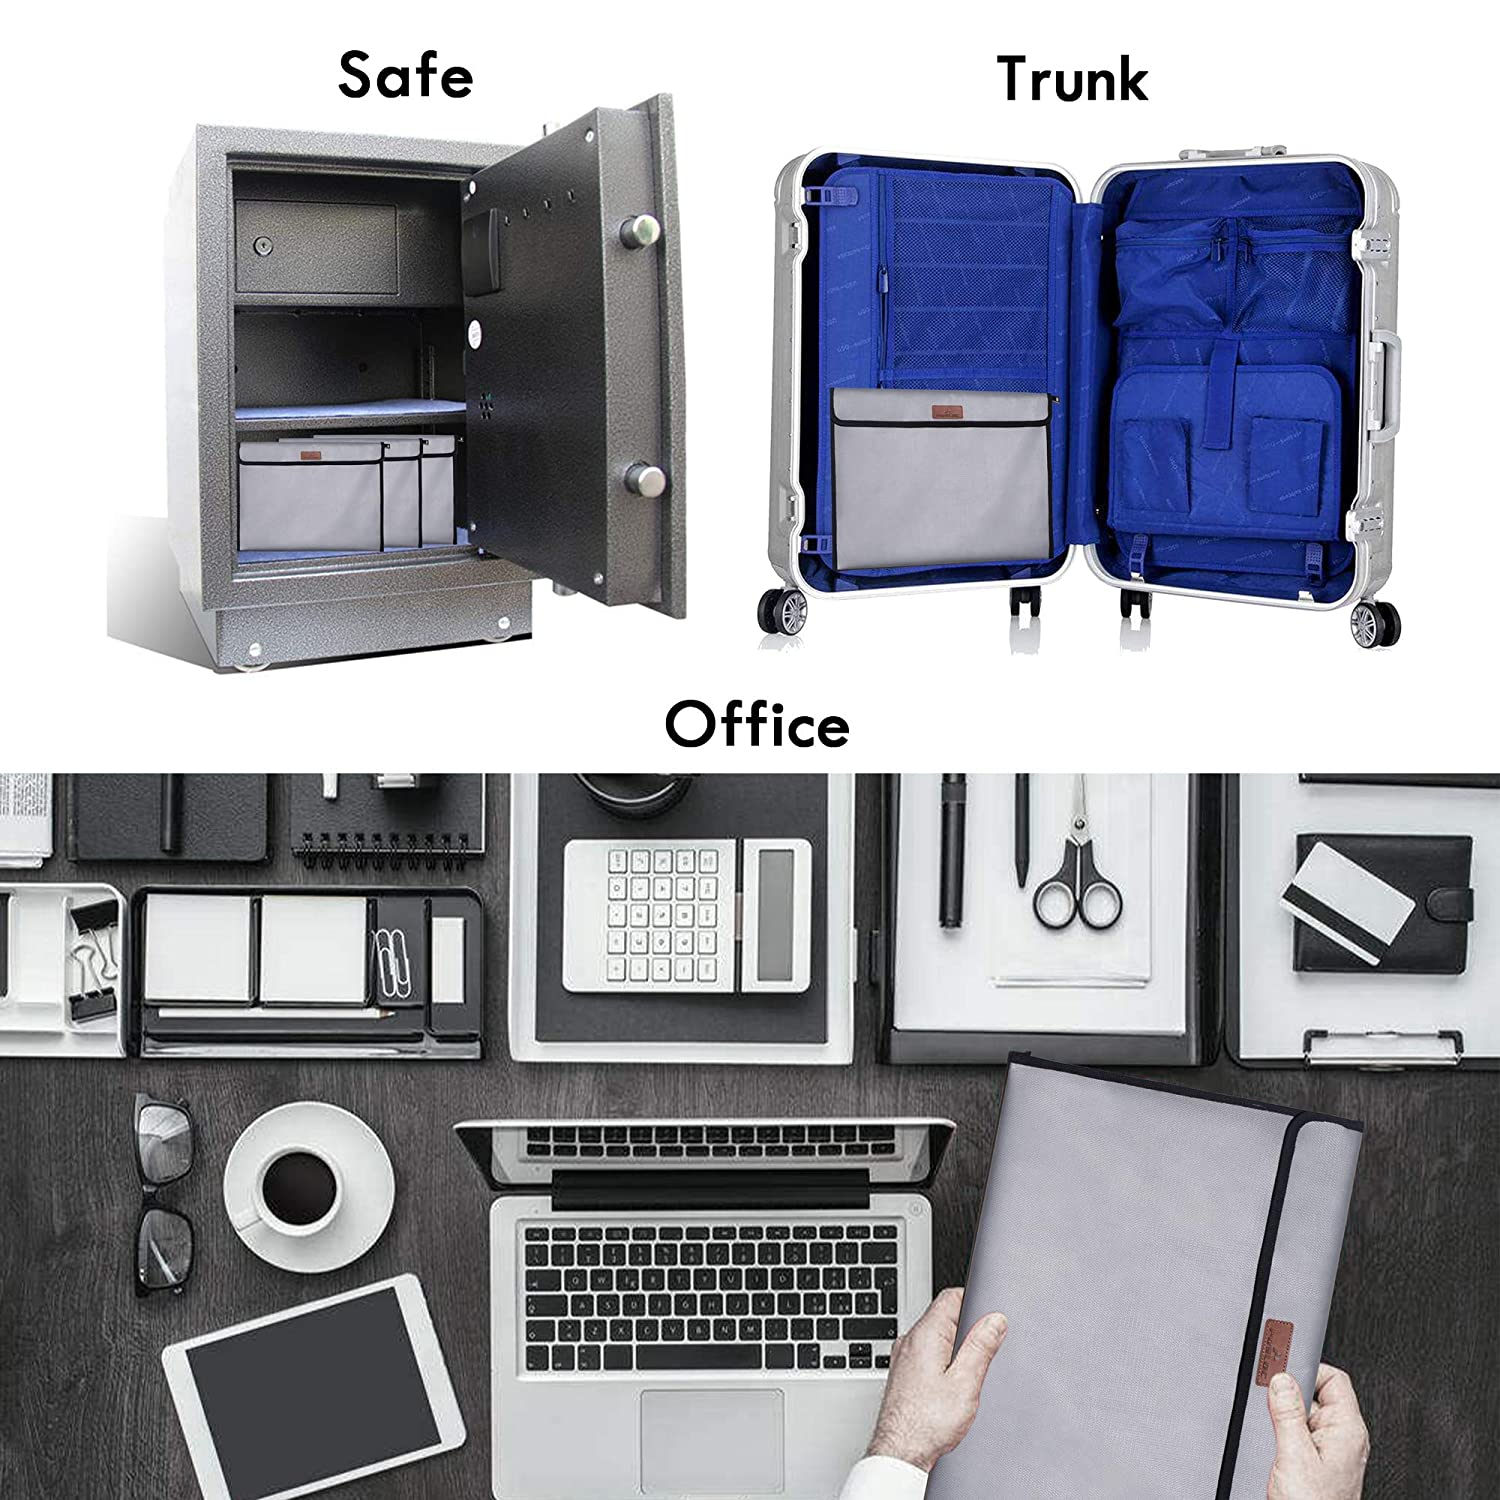 Documents 15.6 * 11.6inch Jewelry and Passport Posloc Fireproof Document Bag Non-Itchy Silicone Coated Fire Resistant Money Bag Fireproof Safe Storage for Money Bag in bag design